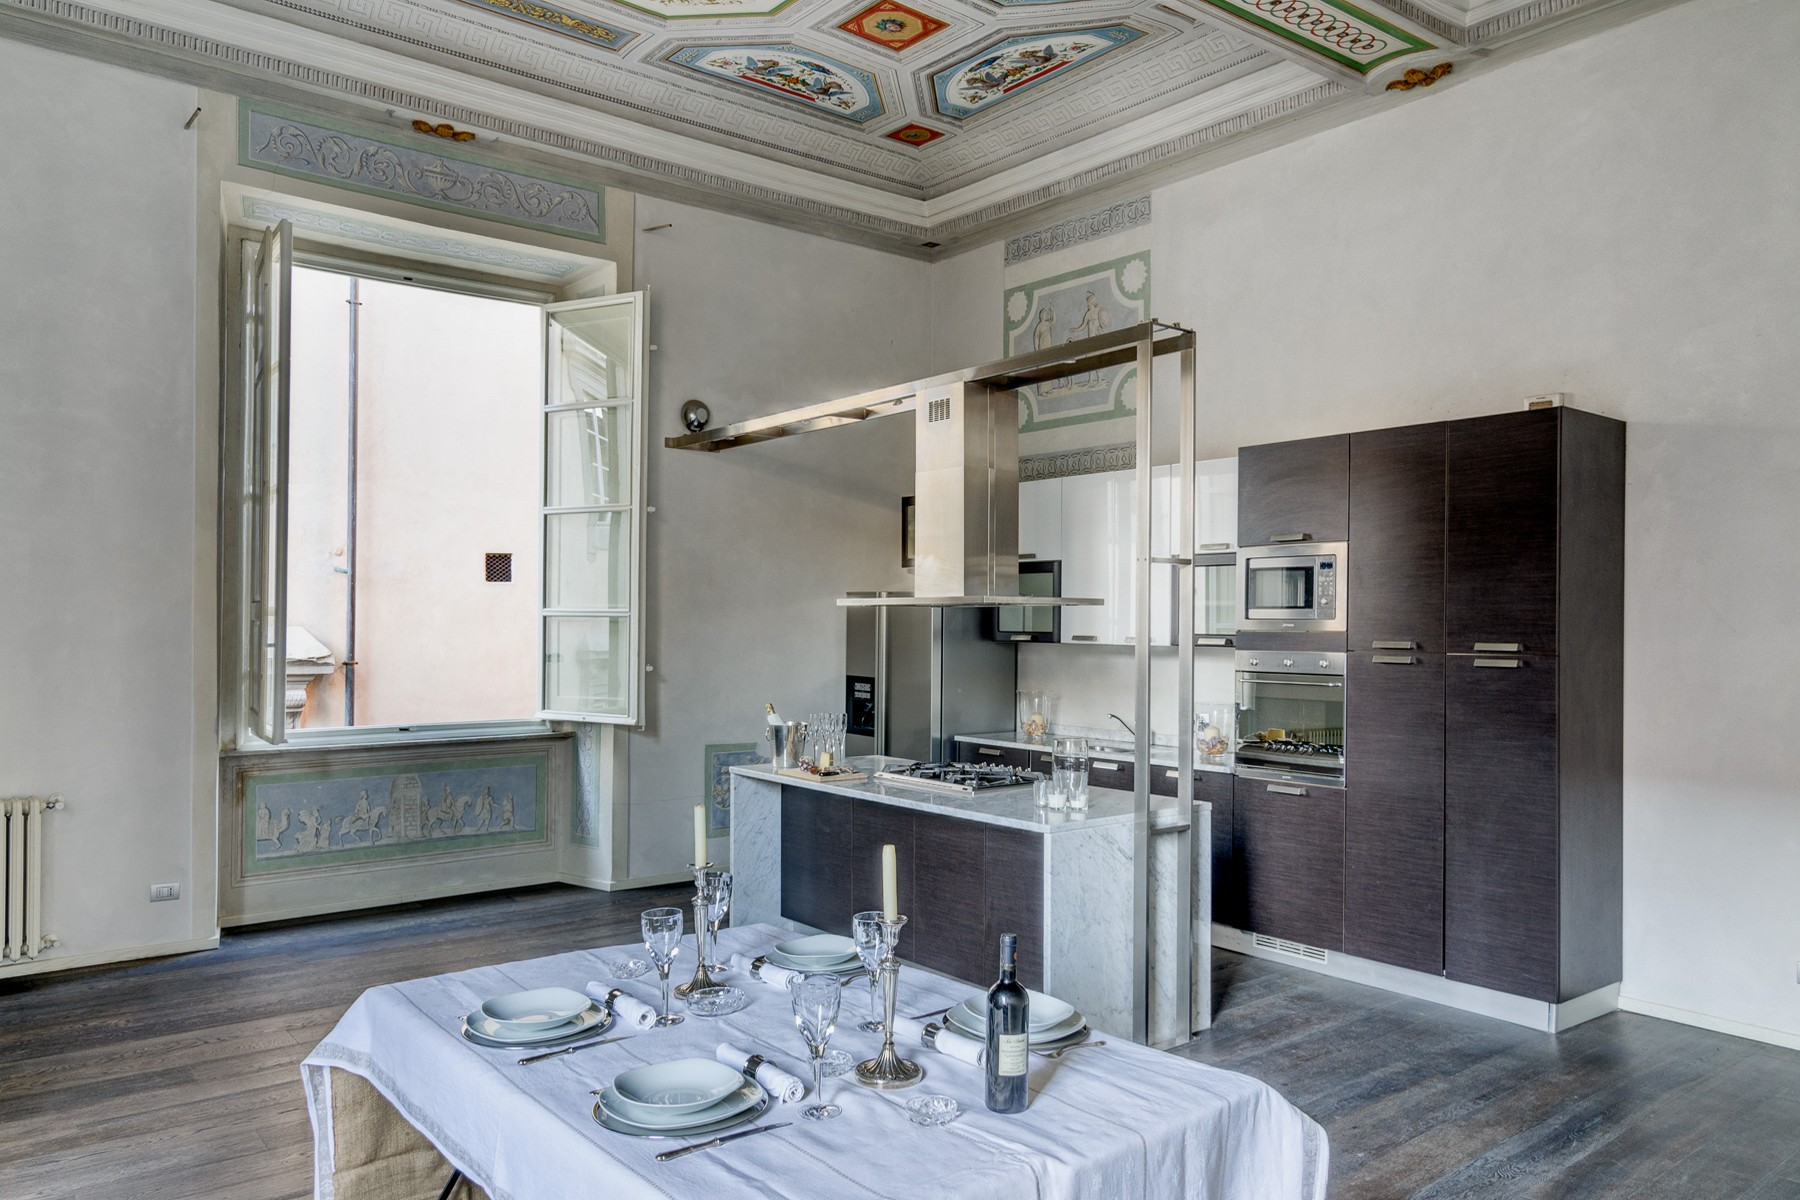 Additional photo for property listing at Exclusive and elegant apartment Via San Giorgio Lucca, Lucca 55100 Italy